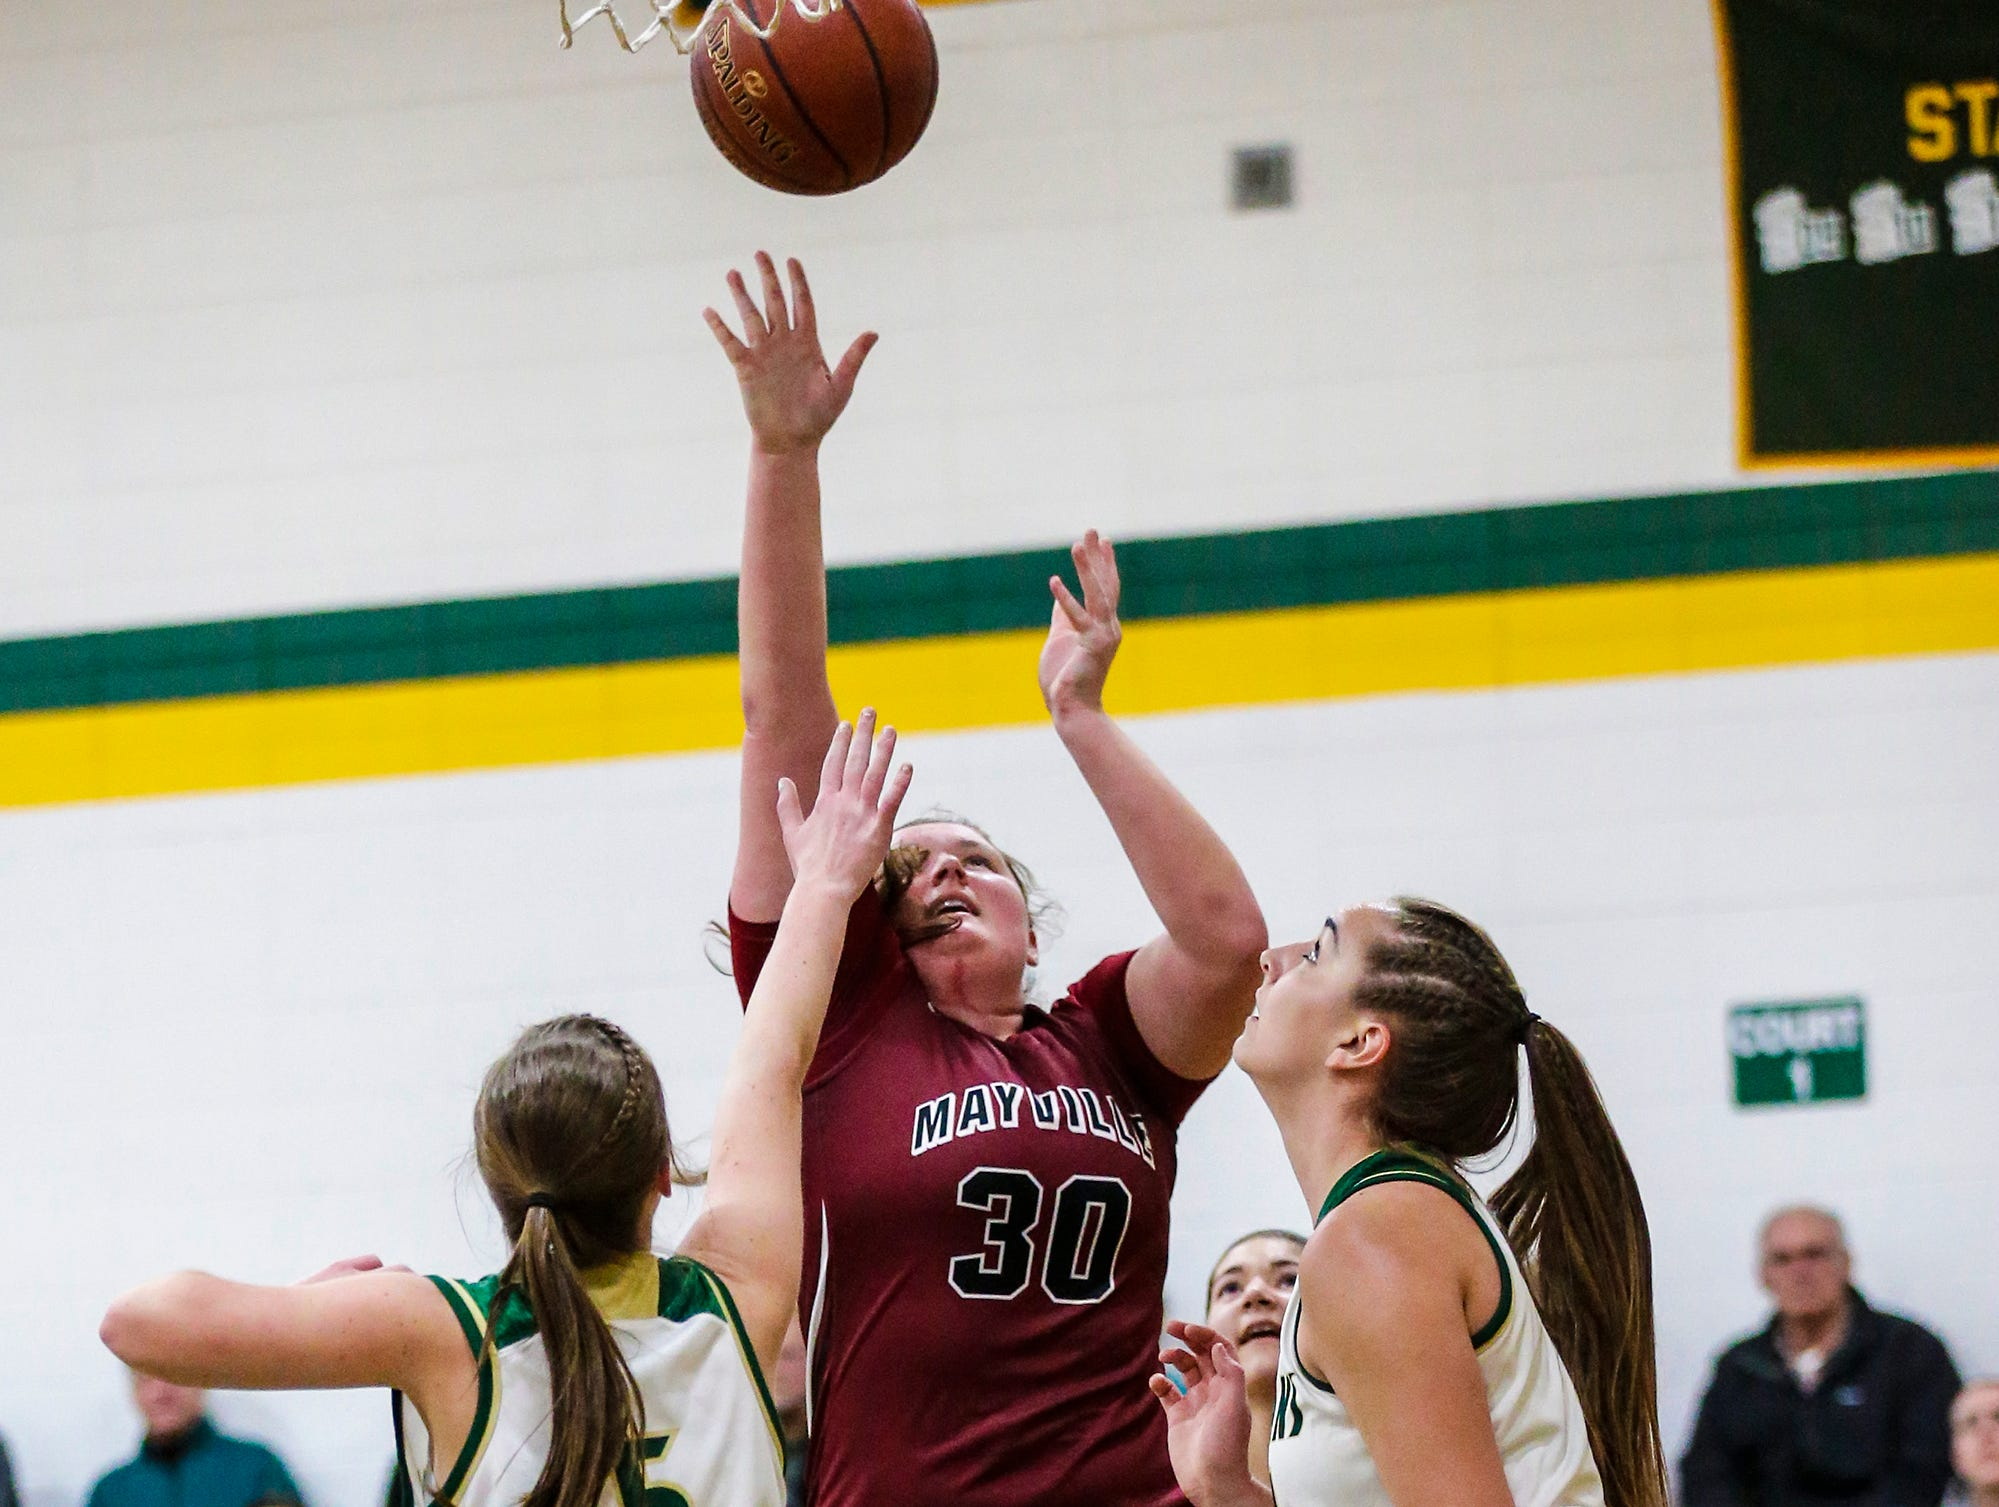 Mayville High School girls basketball's Sydney Schultz shoots a basket over Laconia High School's Jen Beattie (5) and Alissa Dins (21) during their game Friday, November 30, 2018 in Rosendale. Doug Raflik/USA TODAY NETWORK-Wisconsin